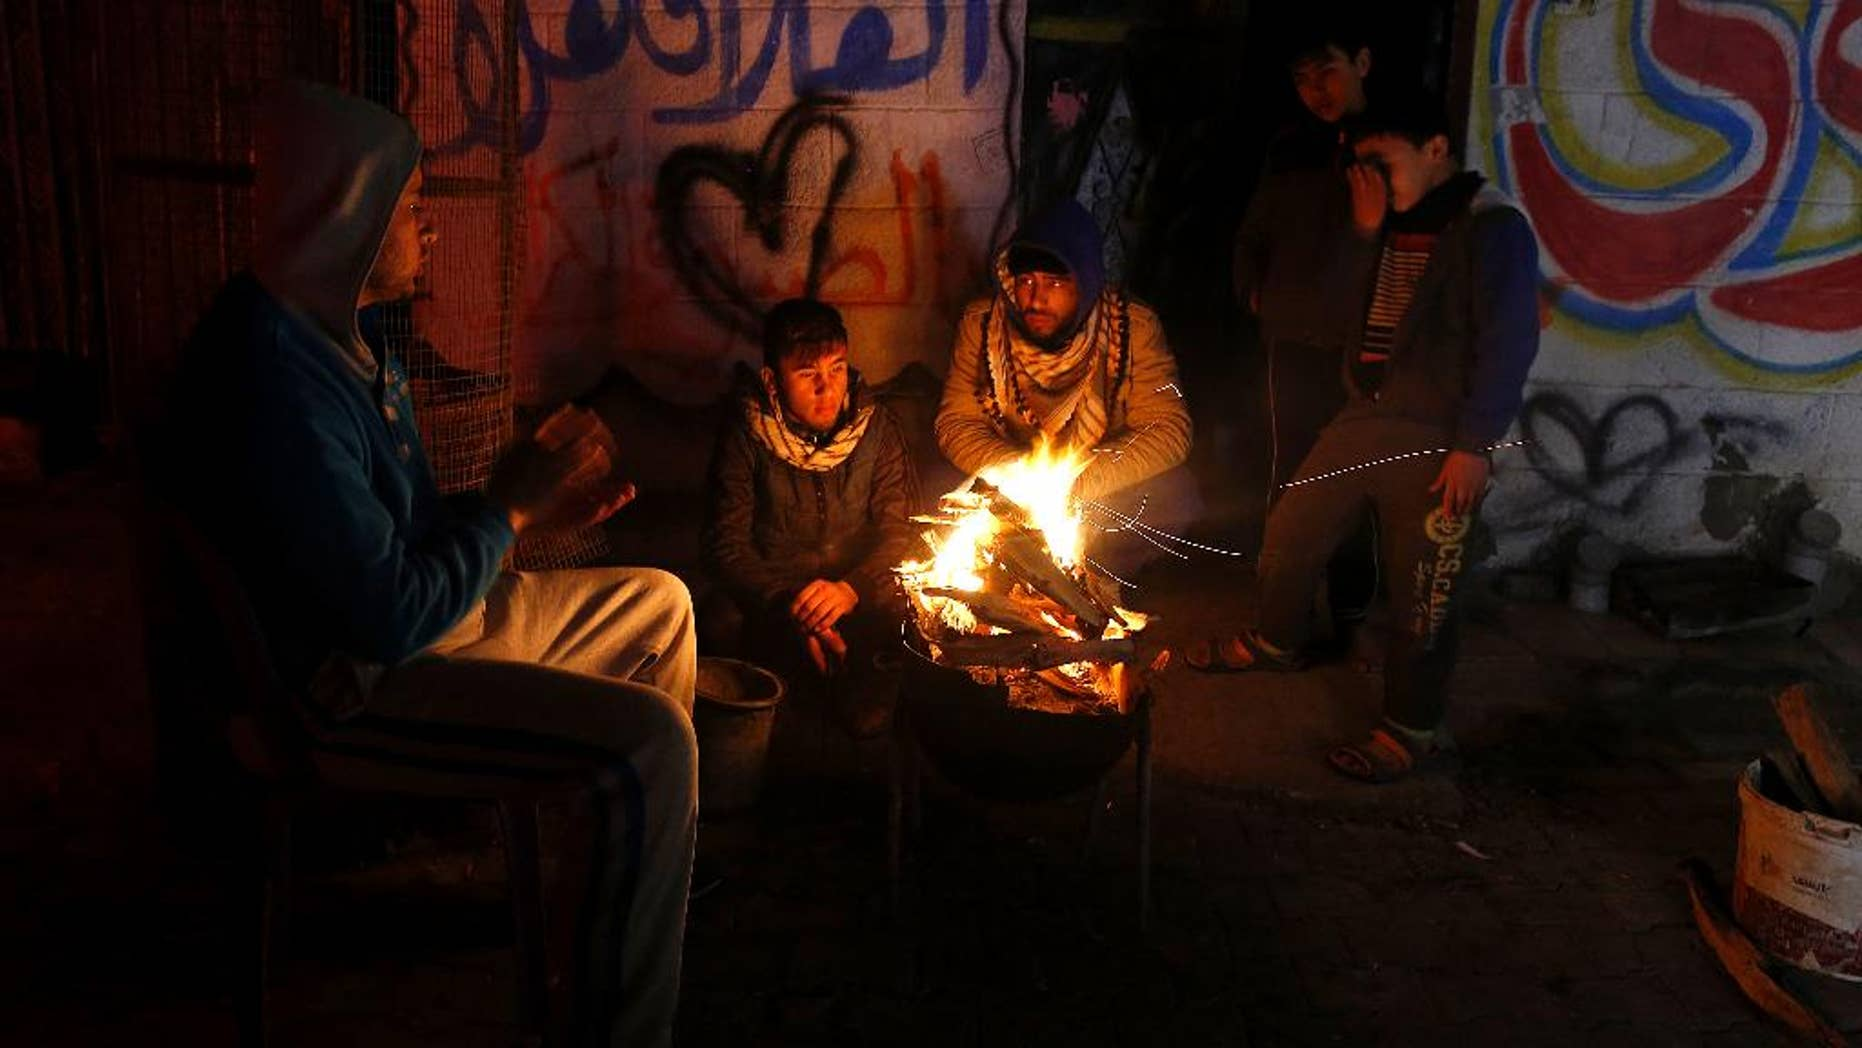 FILE -- In this Jan. 25, 2016 file photo, Palestinians, who get only several hours of electricity a day, sit around a fire outside their home in Gaza City. Israel said Thursday, April 27, 2017, that it was informed that the Palestinian self-rule government in the West Bank will stop paying for electricity Israel sells to the Gaza Strip. Abbas has threatened to exert financial pressure against political rival Hamas to cede control of Gaza, a territory it seized from him in 2007. Gazans now have electricity for only six hours a day. (AP Photo/Hatem Moussa, File)